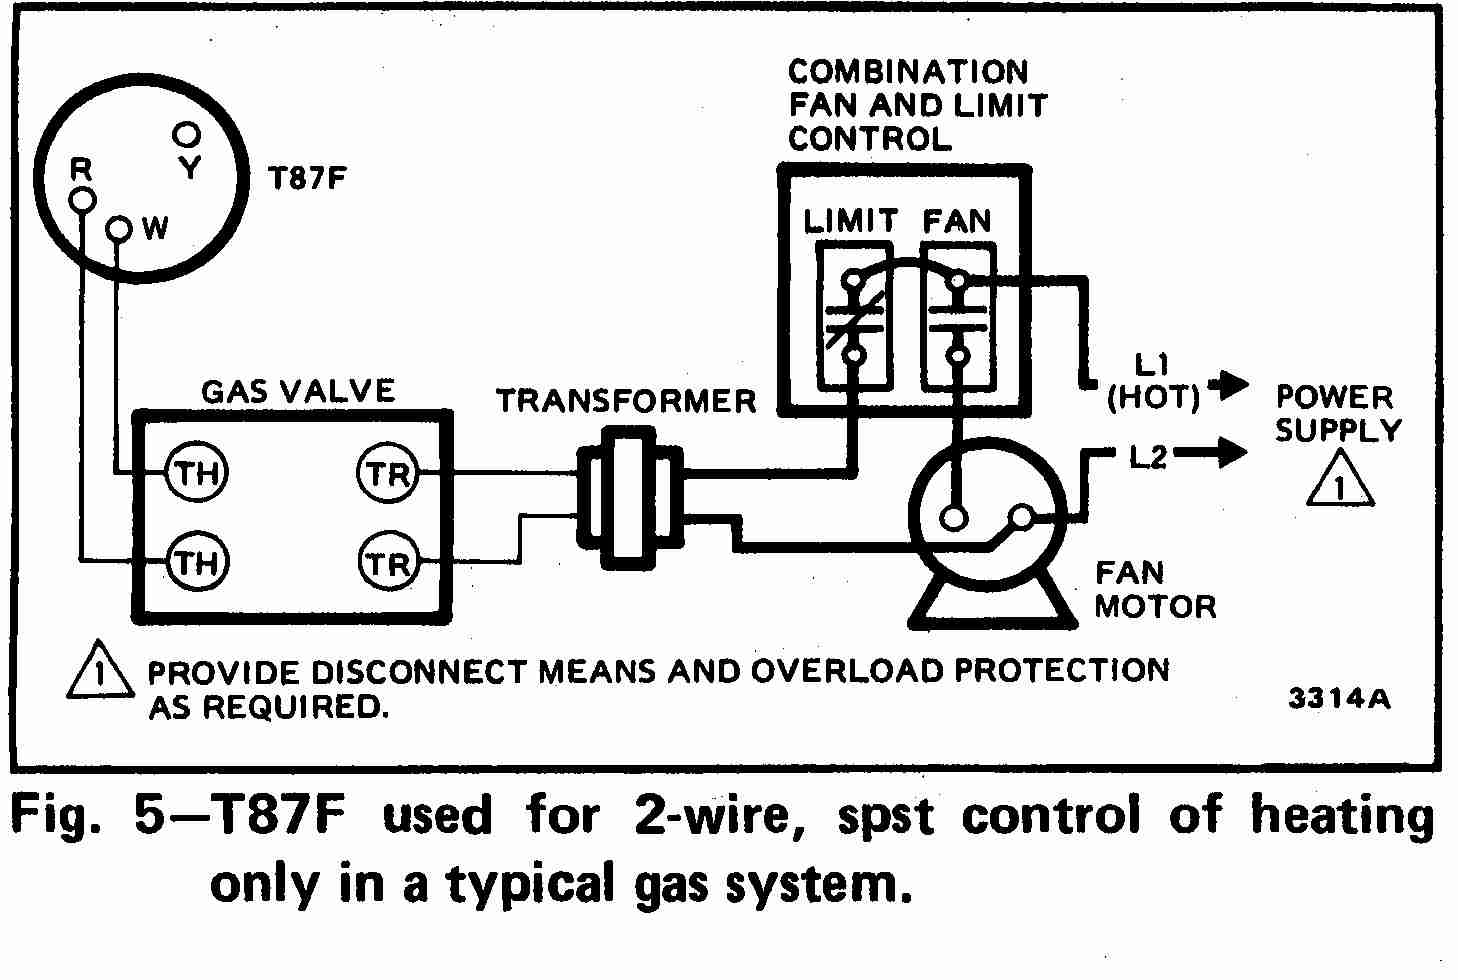 air conditioner wiring color code with Thermostat Wiring Instructions on 1983 1988 Ford Bronco Ii Start Ignition besides 2000 Toyota Avalon Engine Diagram additionally P 0900c152800610de together with 1999 Subaru Legacy Stereo Wiring Diagram also Marine Air Conditioning Wiring Diagram.